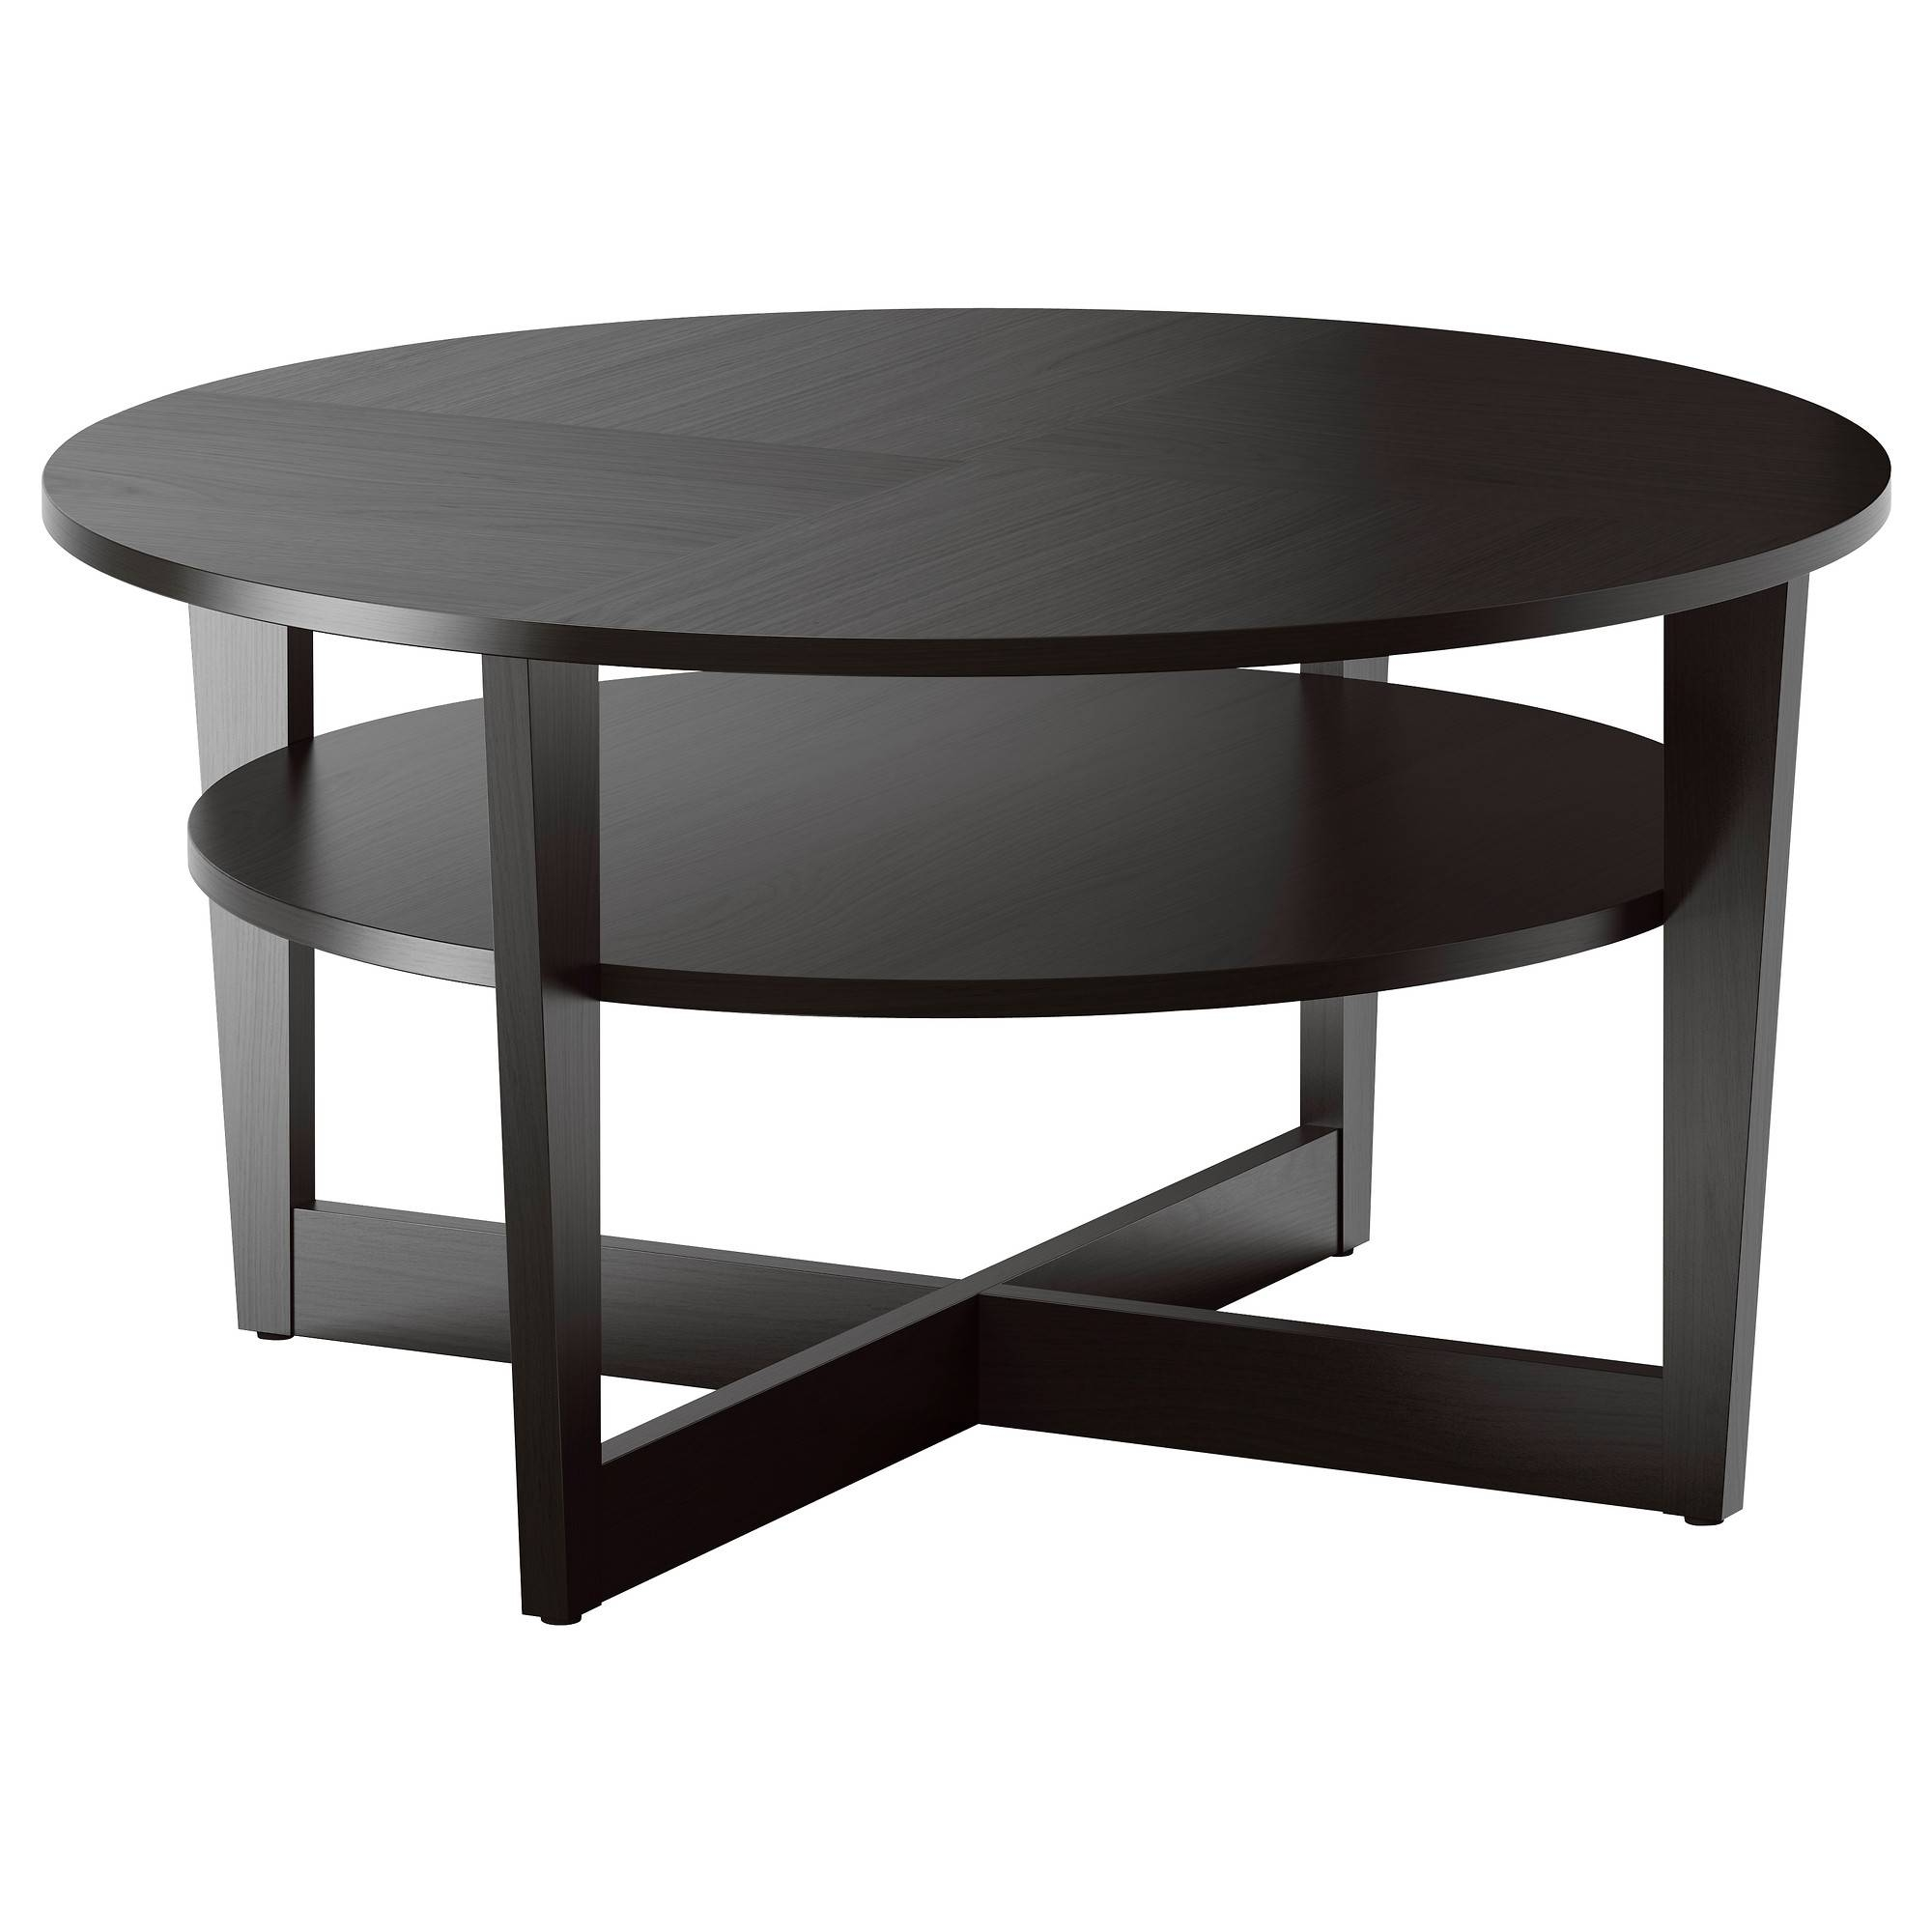 Vejmon Coffee Table - Black-Brown - Ikea inside White and Black Coffee Tables (Image 28 of 30)